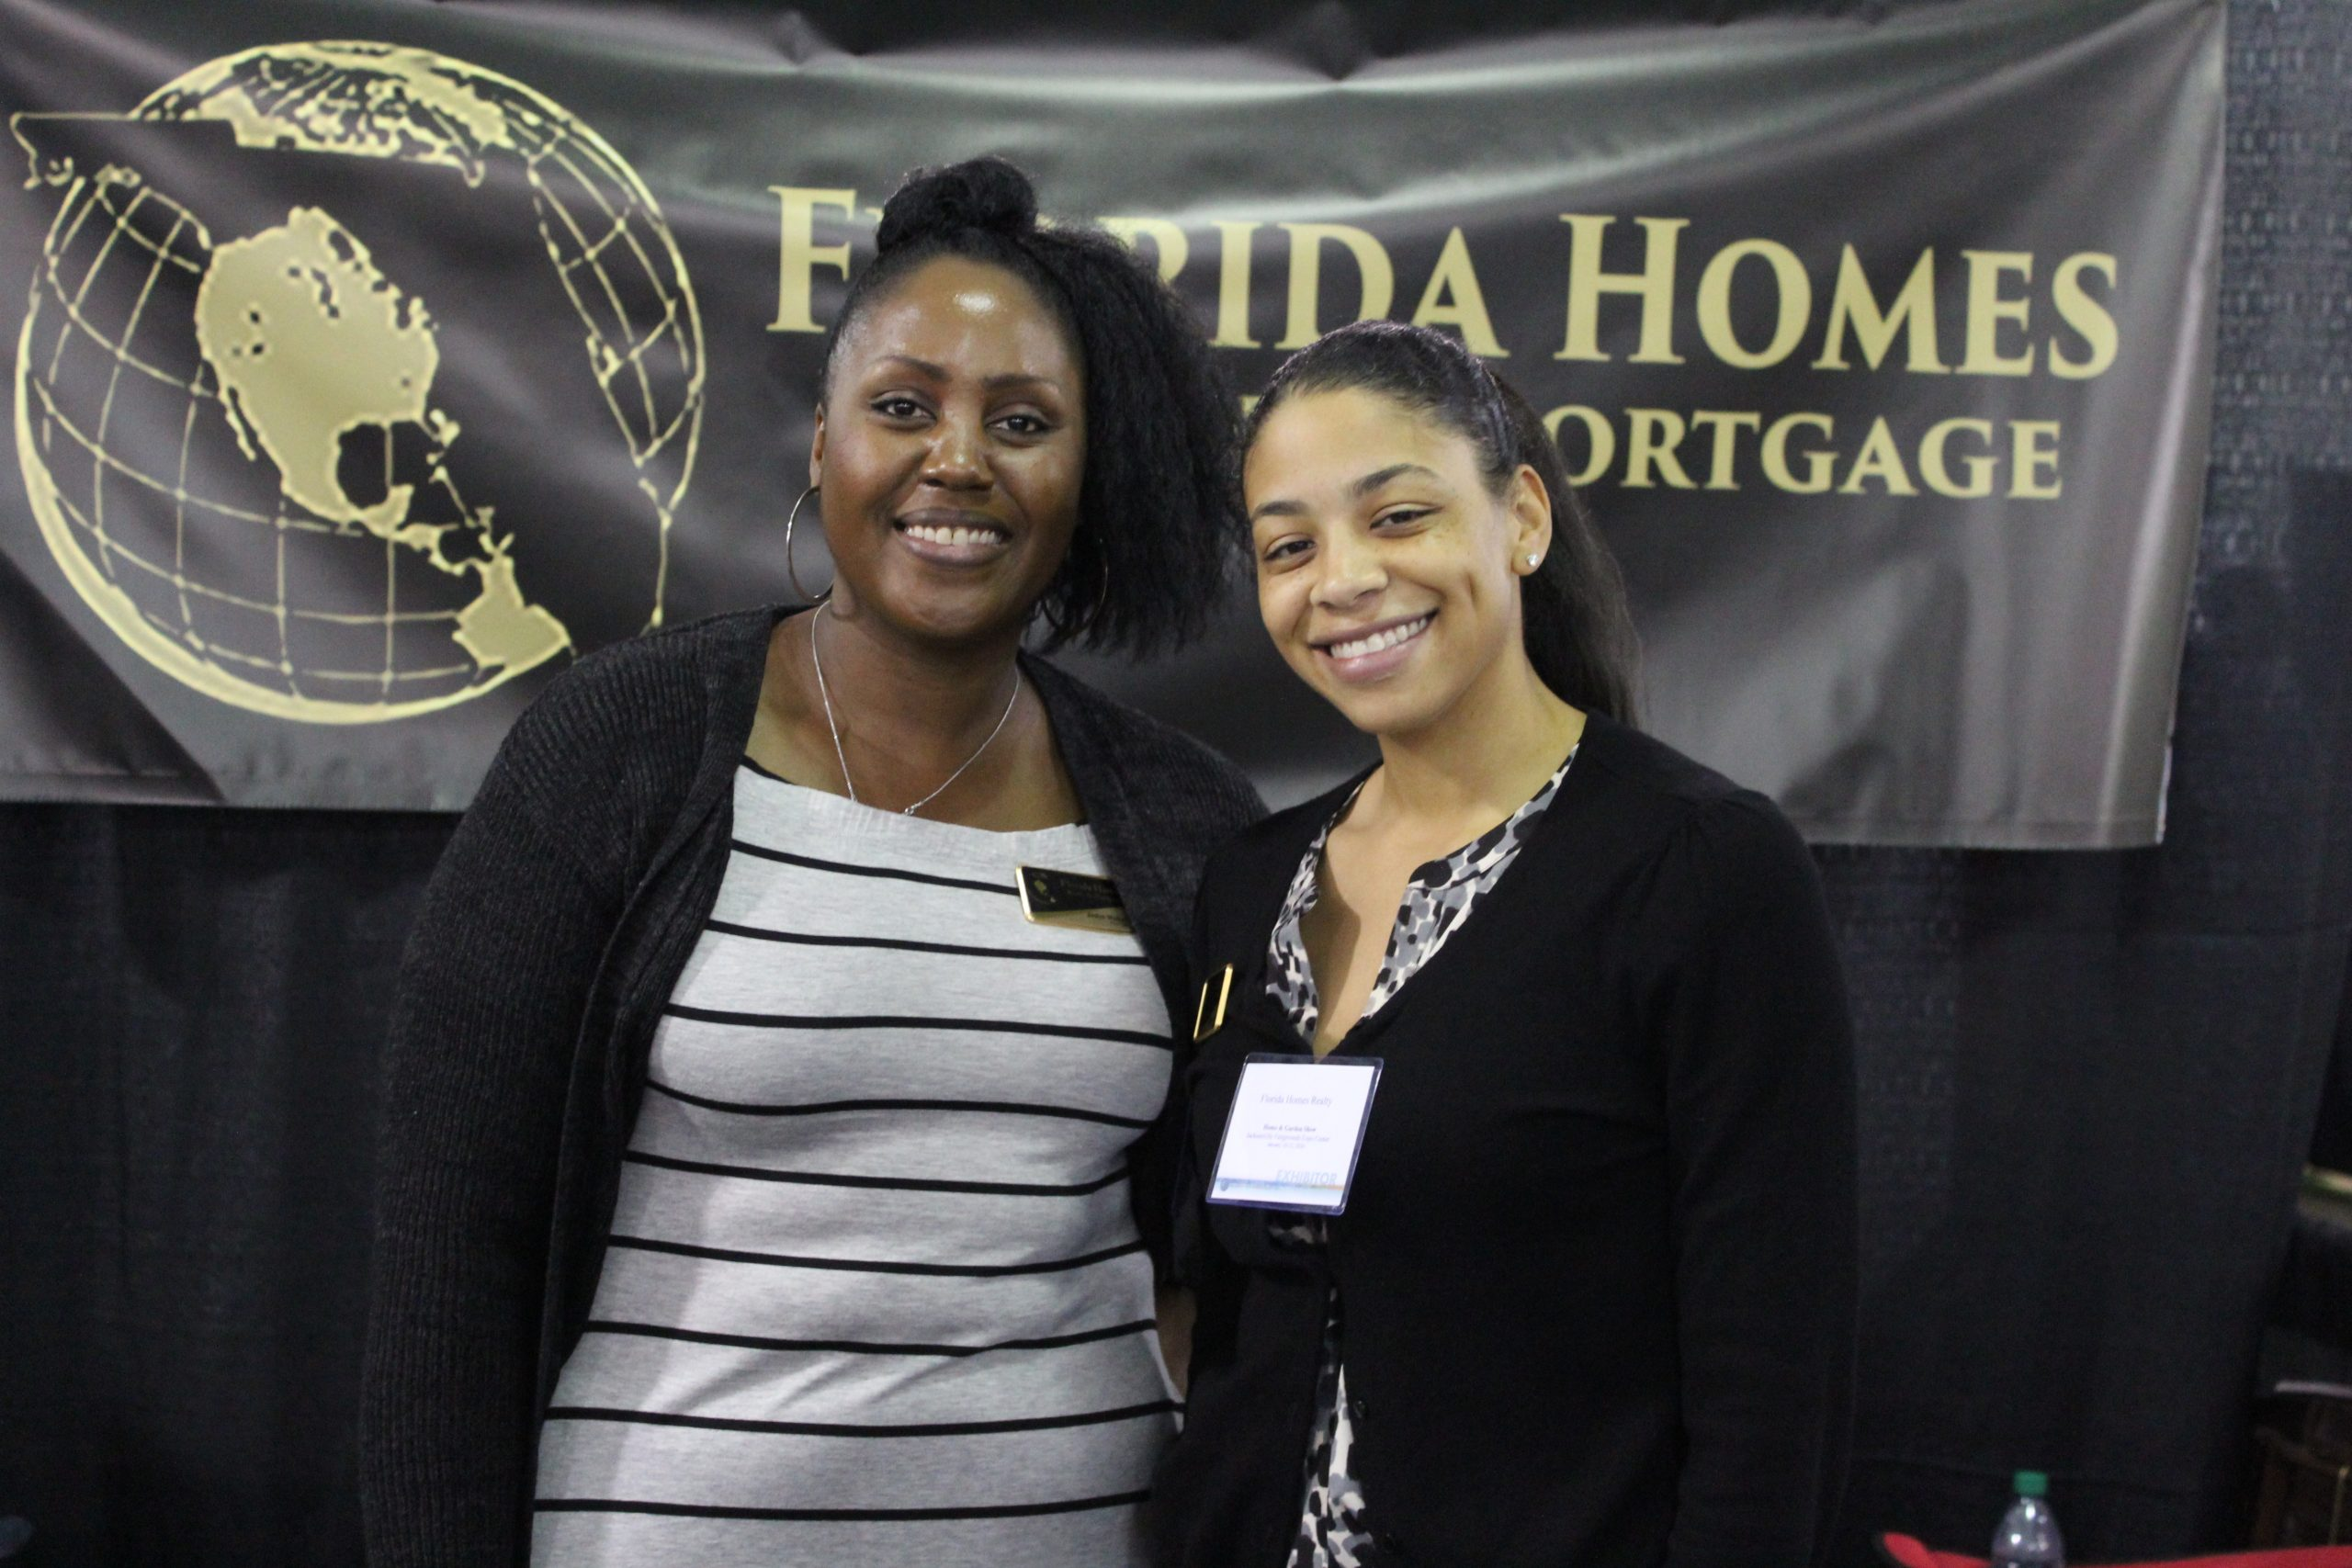 Florida Homes Mortage at Jacksonville Home & Garden Show